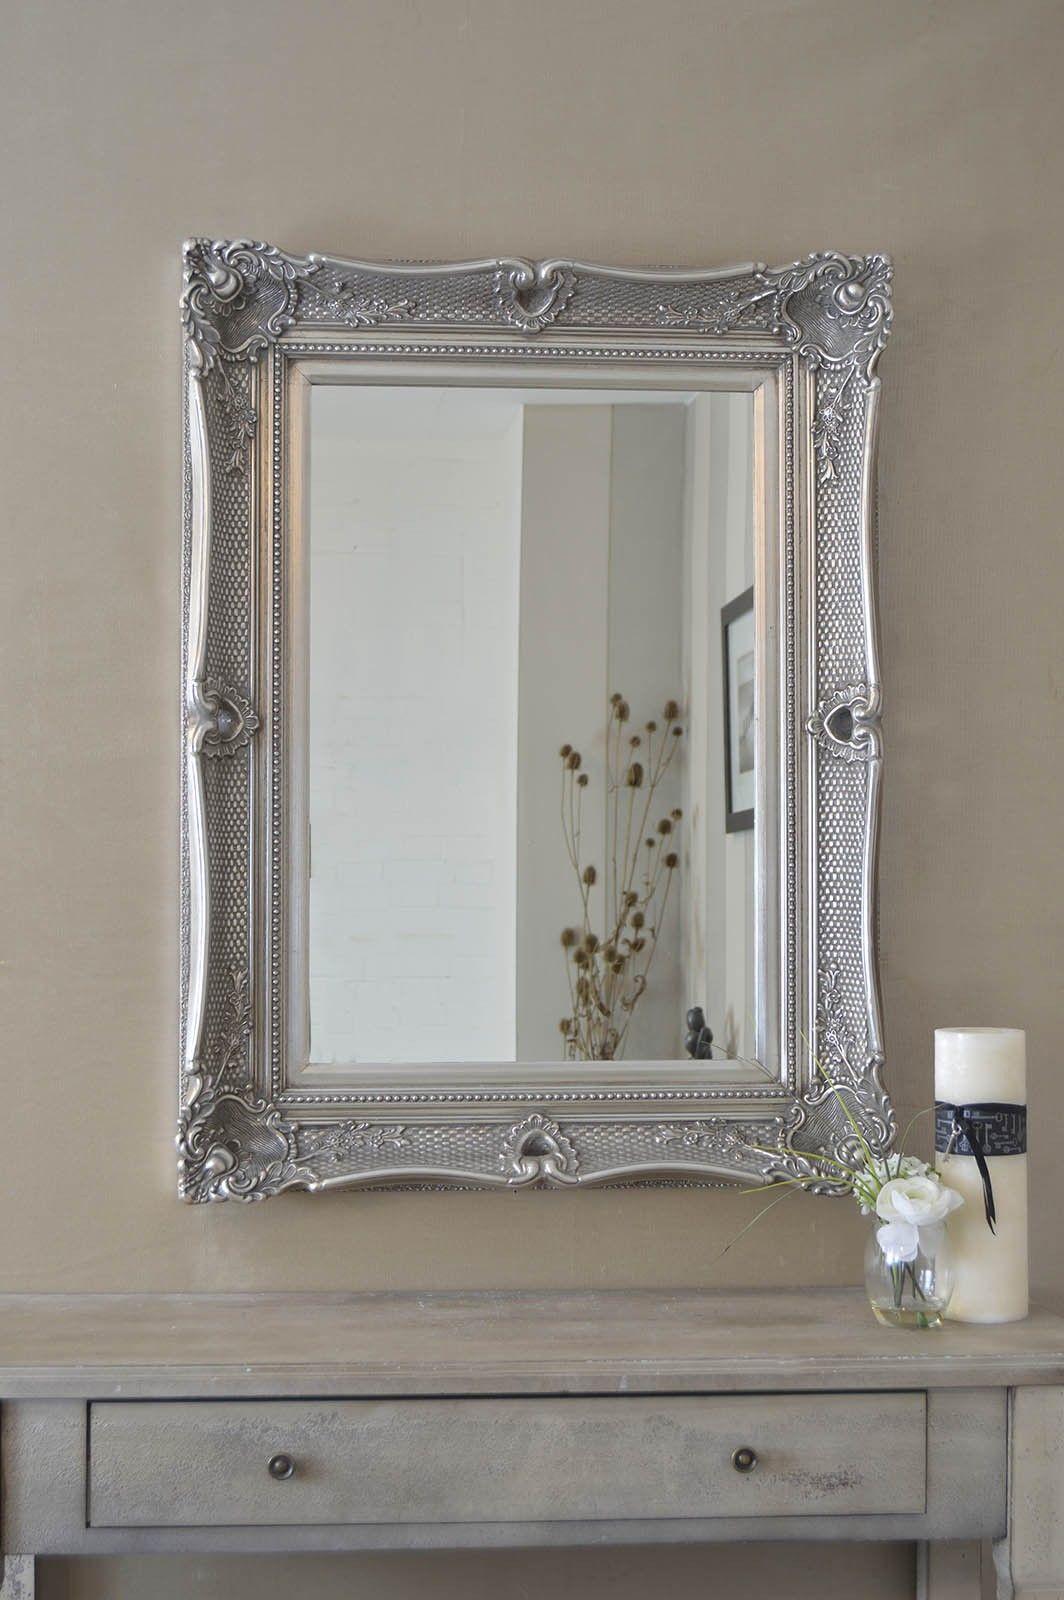 5 Quot Glamorous Ornate Style Wall Mirror This Particular